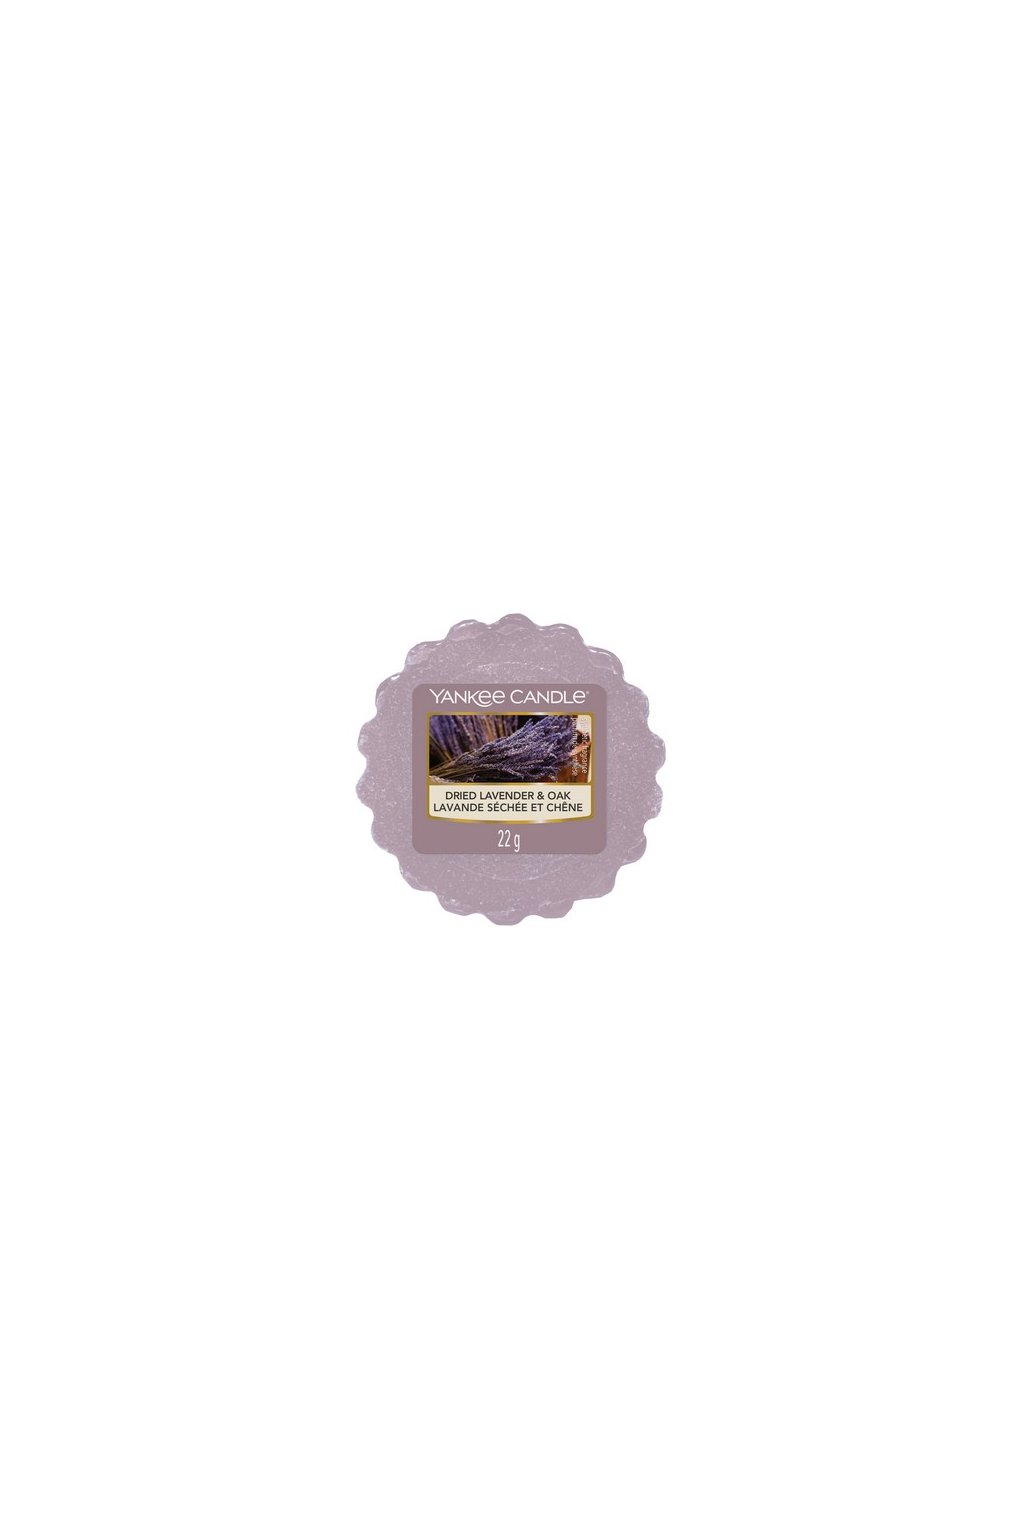 Yankee Candle Dried Lavender & Oak 22g